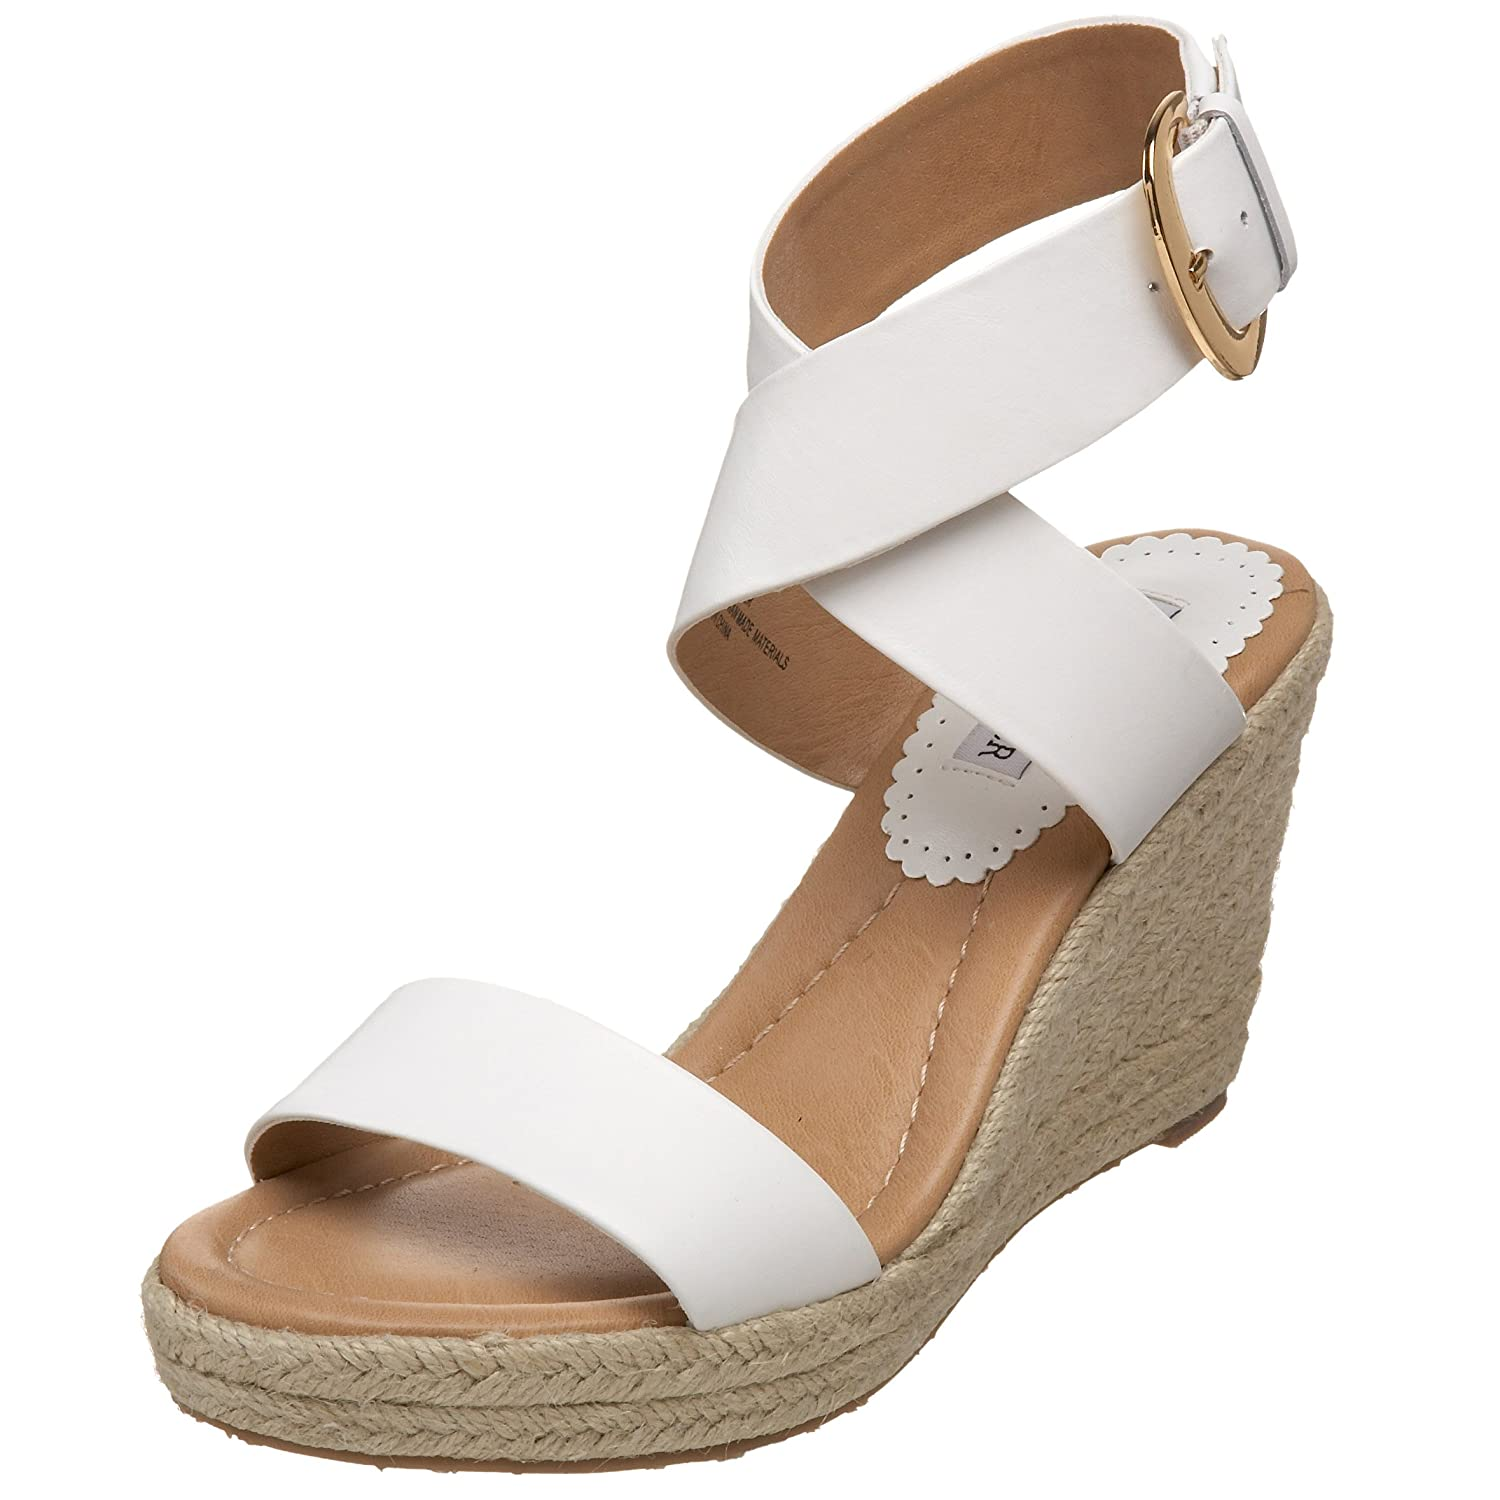 Kelsi Dagger - Ivy Espadrille :  kelsi dagger wedge kelsi dagger ivy espadrille wedge sandals